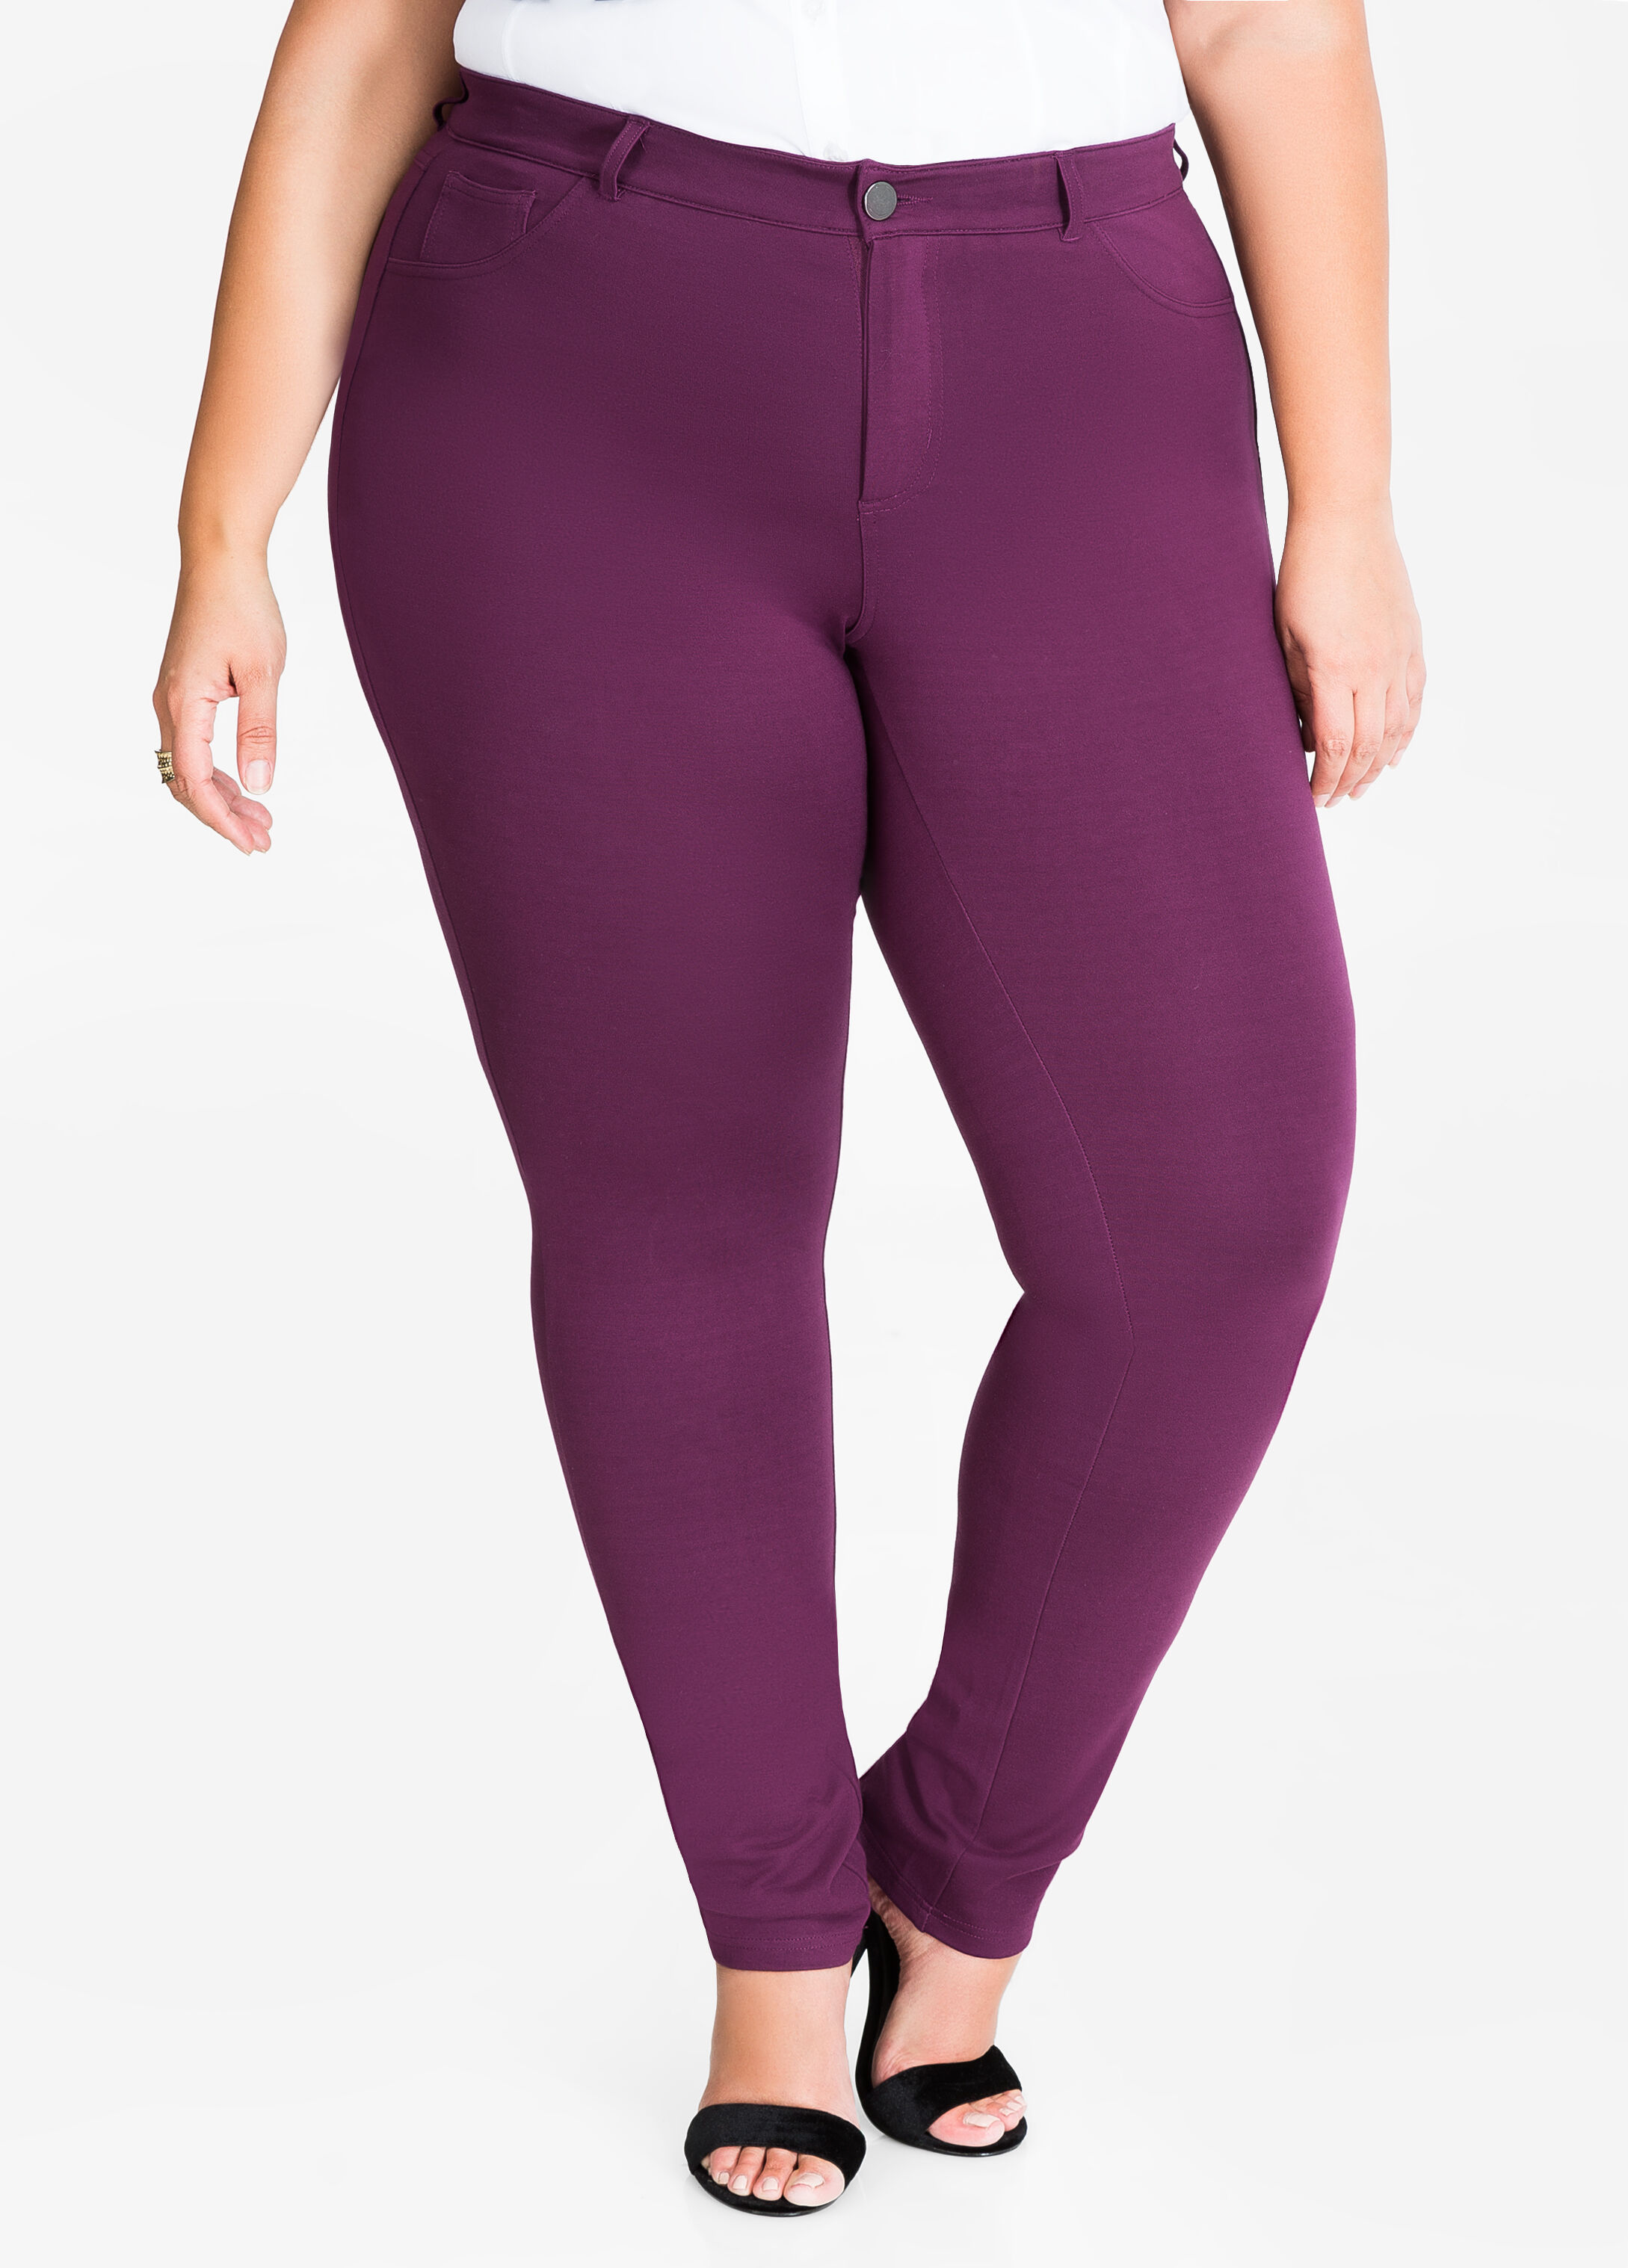 Basic 5 Pocket Ponte Skinny Pant Italian Plum - Bottoms